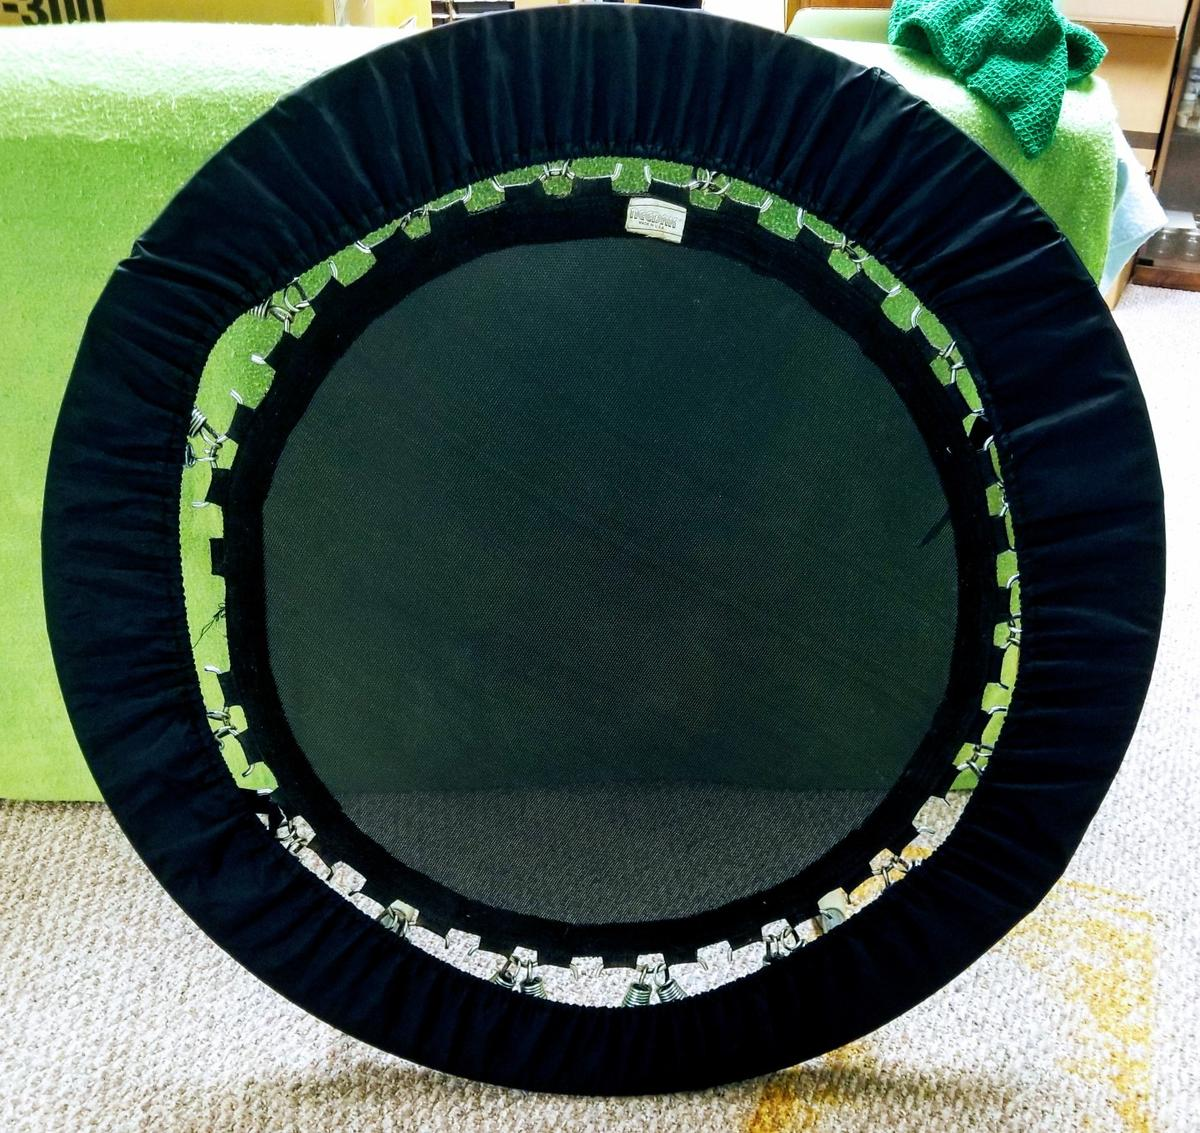 """High end rebounder from Needak. Paid $270 new+$40ish for videos&replacement springs.40"""" across,folds in half for easy storage&transportation. (Legs r spring loaded&fold under. Comes w/carrying bag(small hole. See pic) w/outside pocket. Rebounder has soft bounce mat. 1 mat spring tab has pulled out(see pic). Still usable& replacement mats are available online. Comes with additional replacement springs, videos&beginners manuals. Over all very clean usable condition. Located in Pataskala OH"""